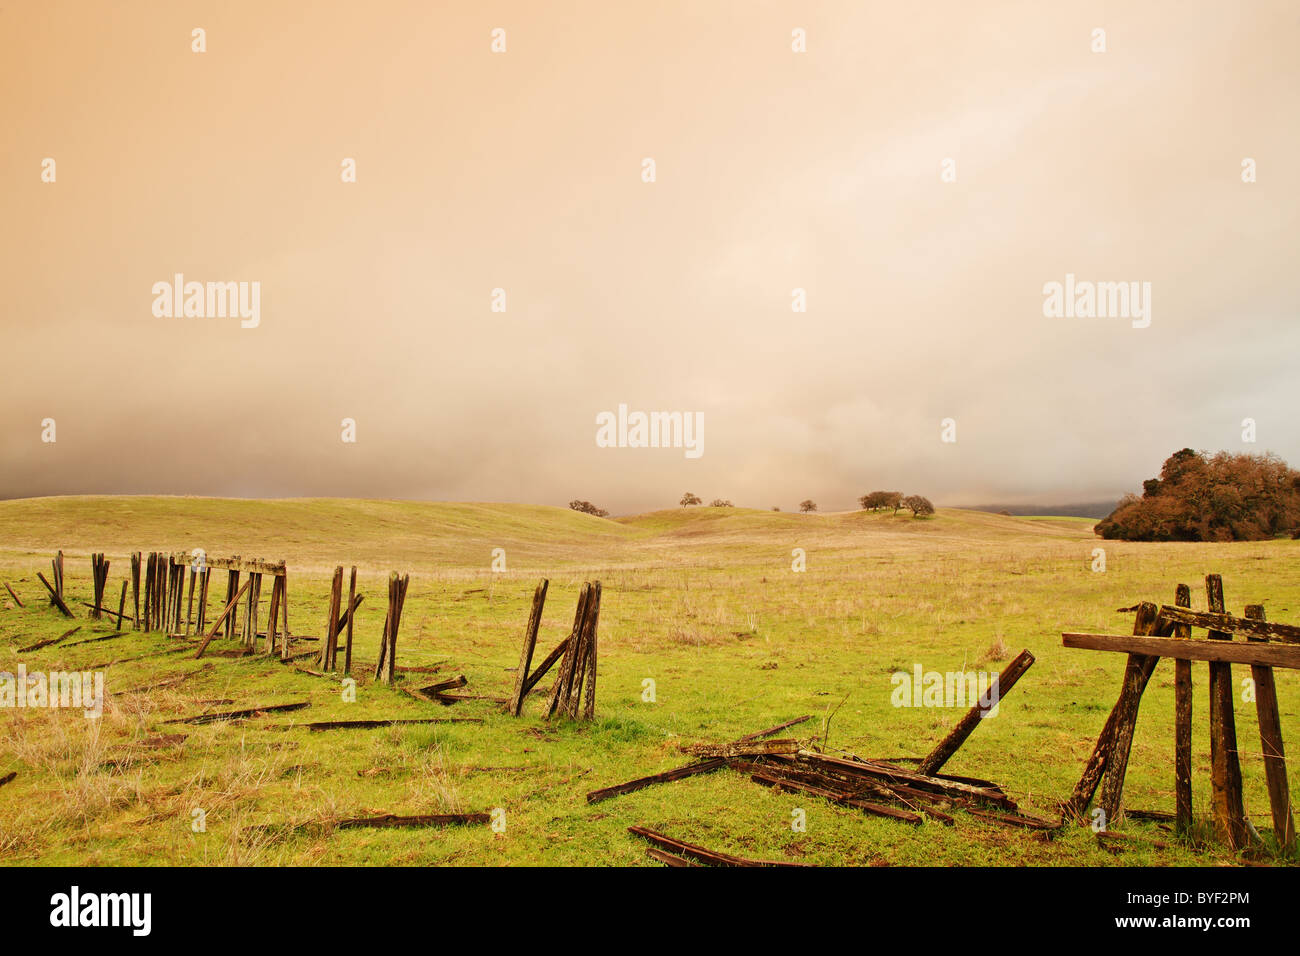 A broken wooden farm fence on a stormy day. - Stock Image